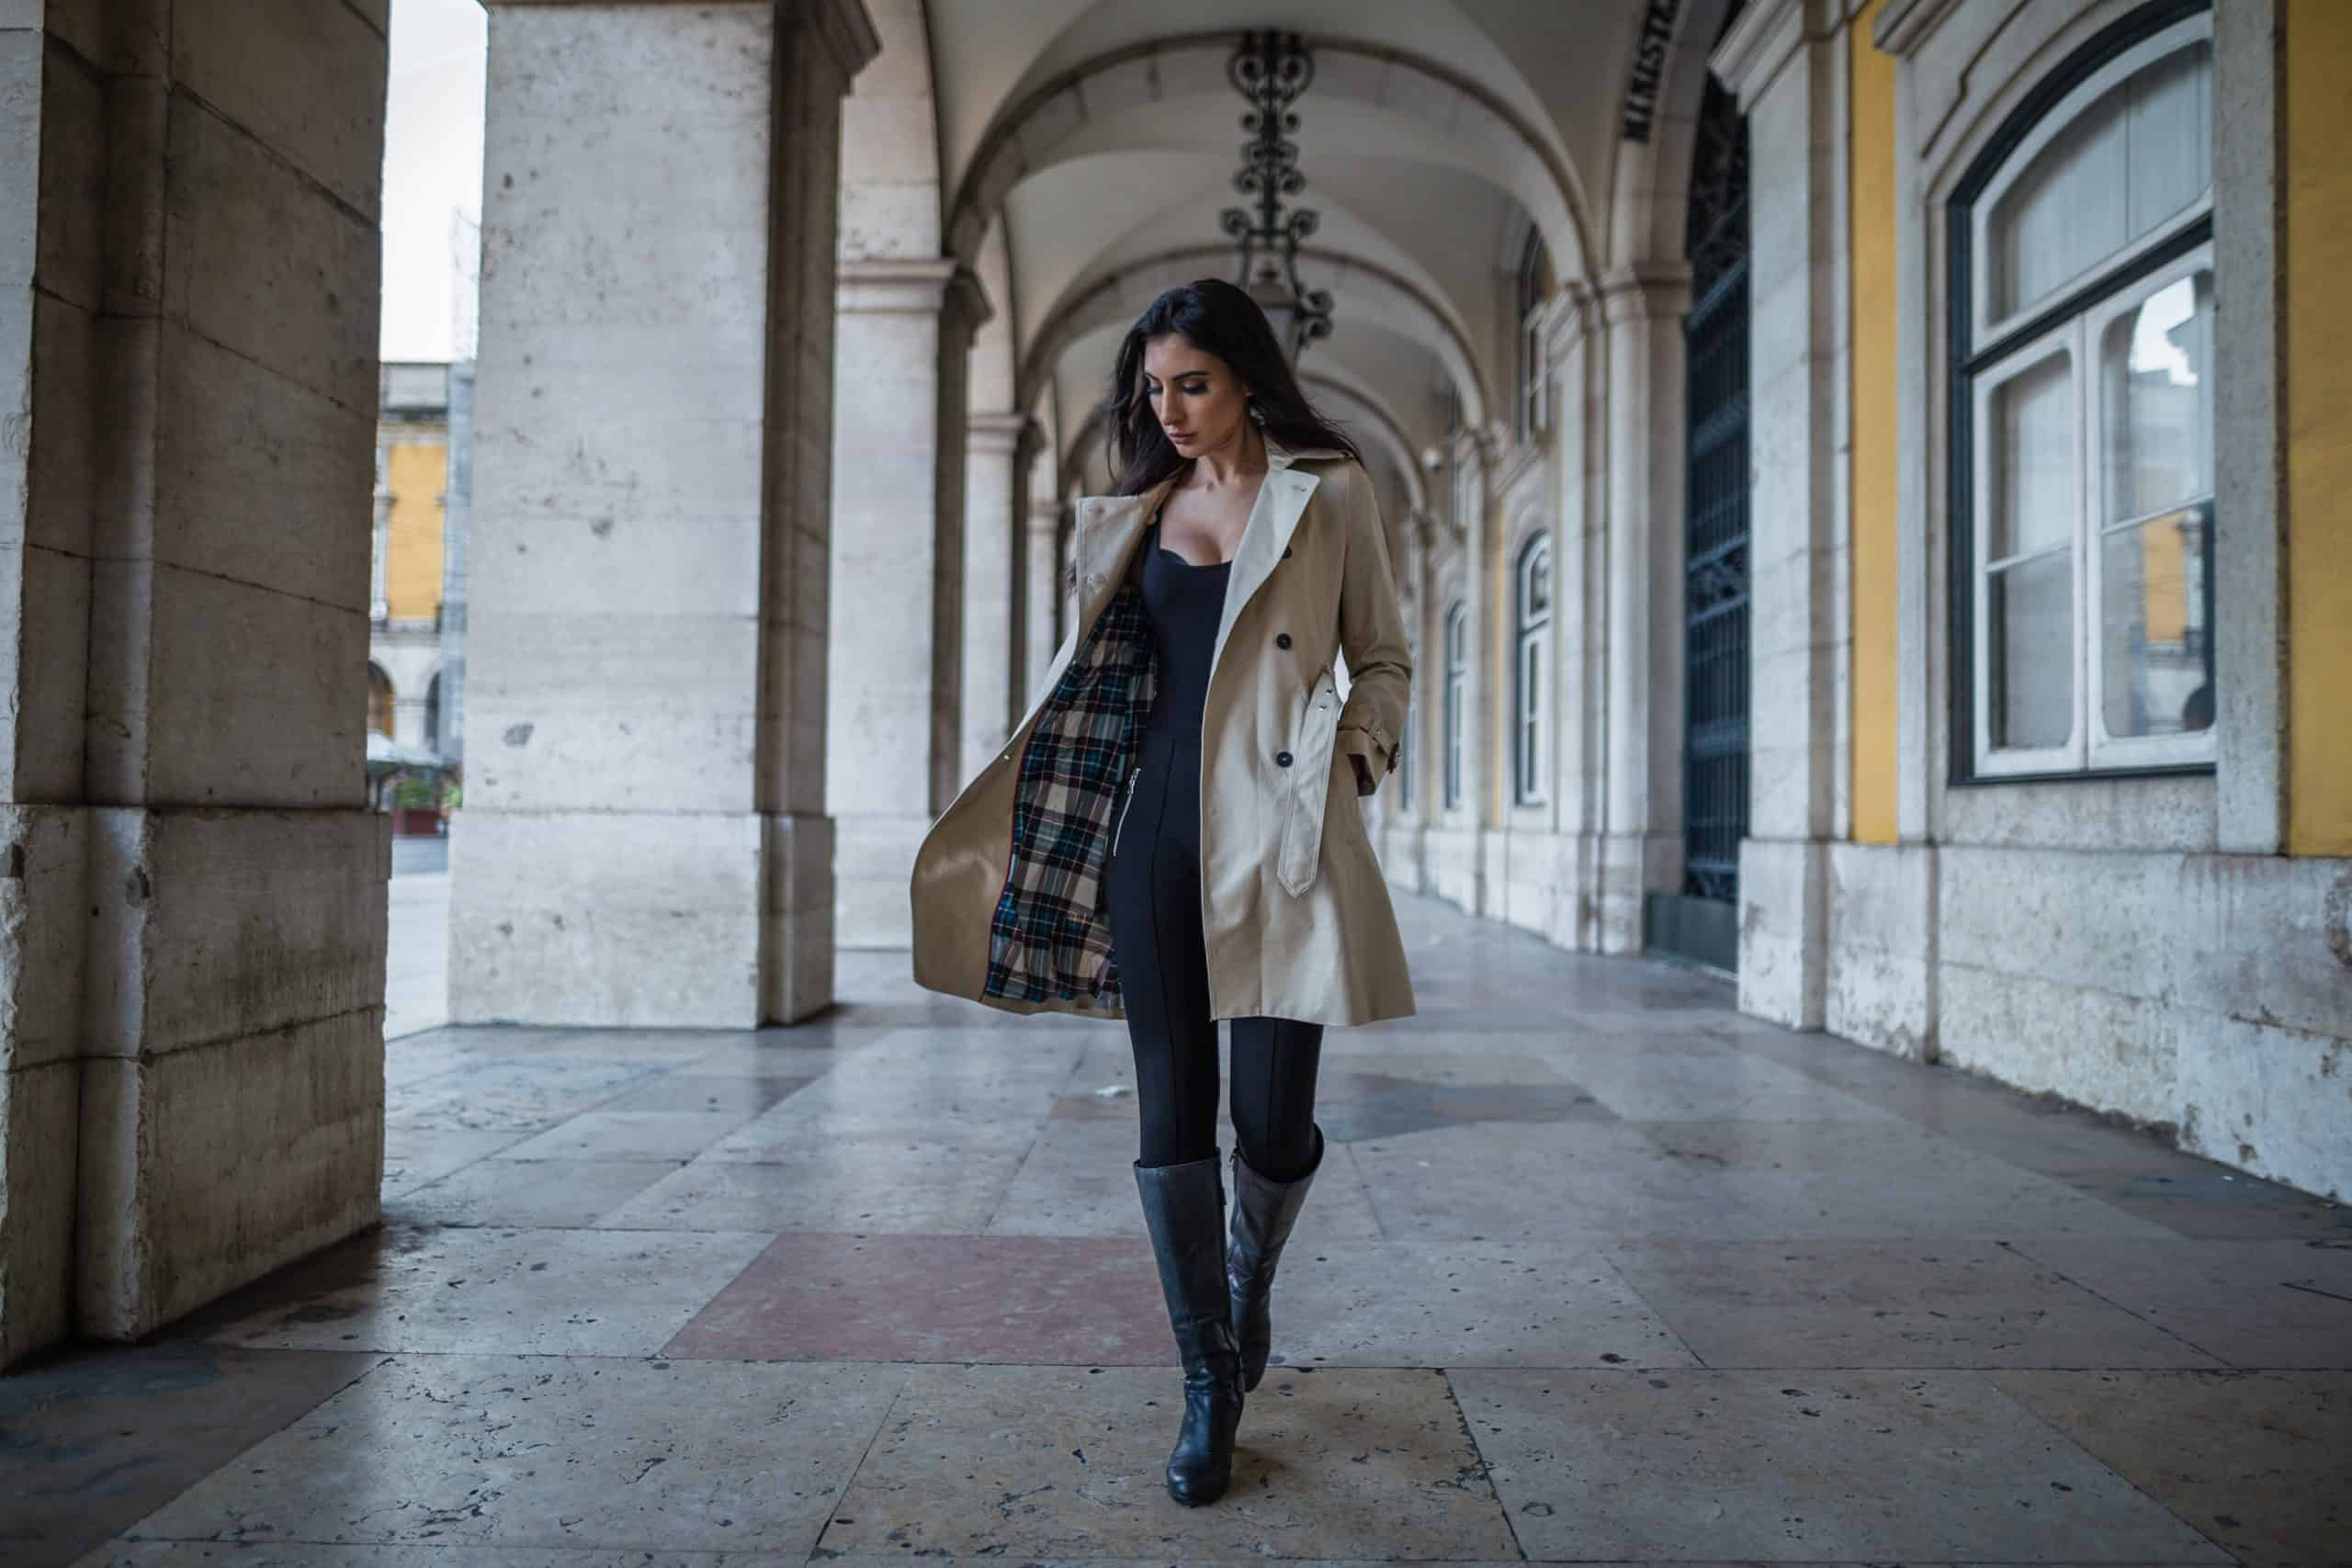 woman walking with big boots and a coat southern fashion styles